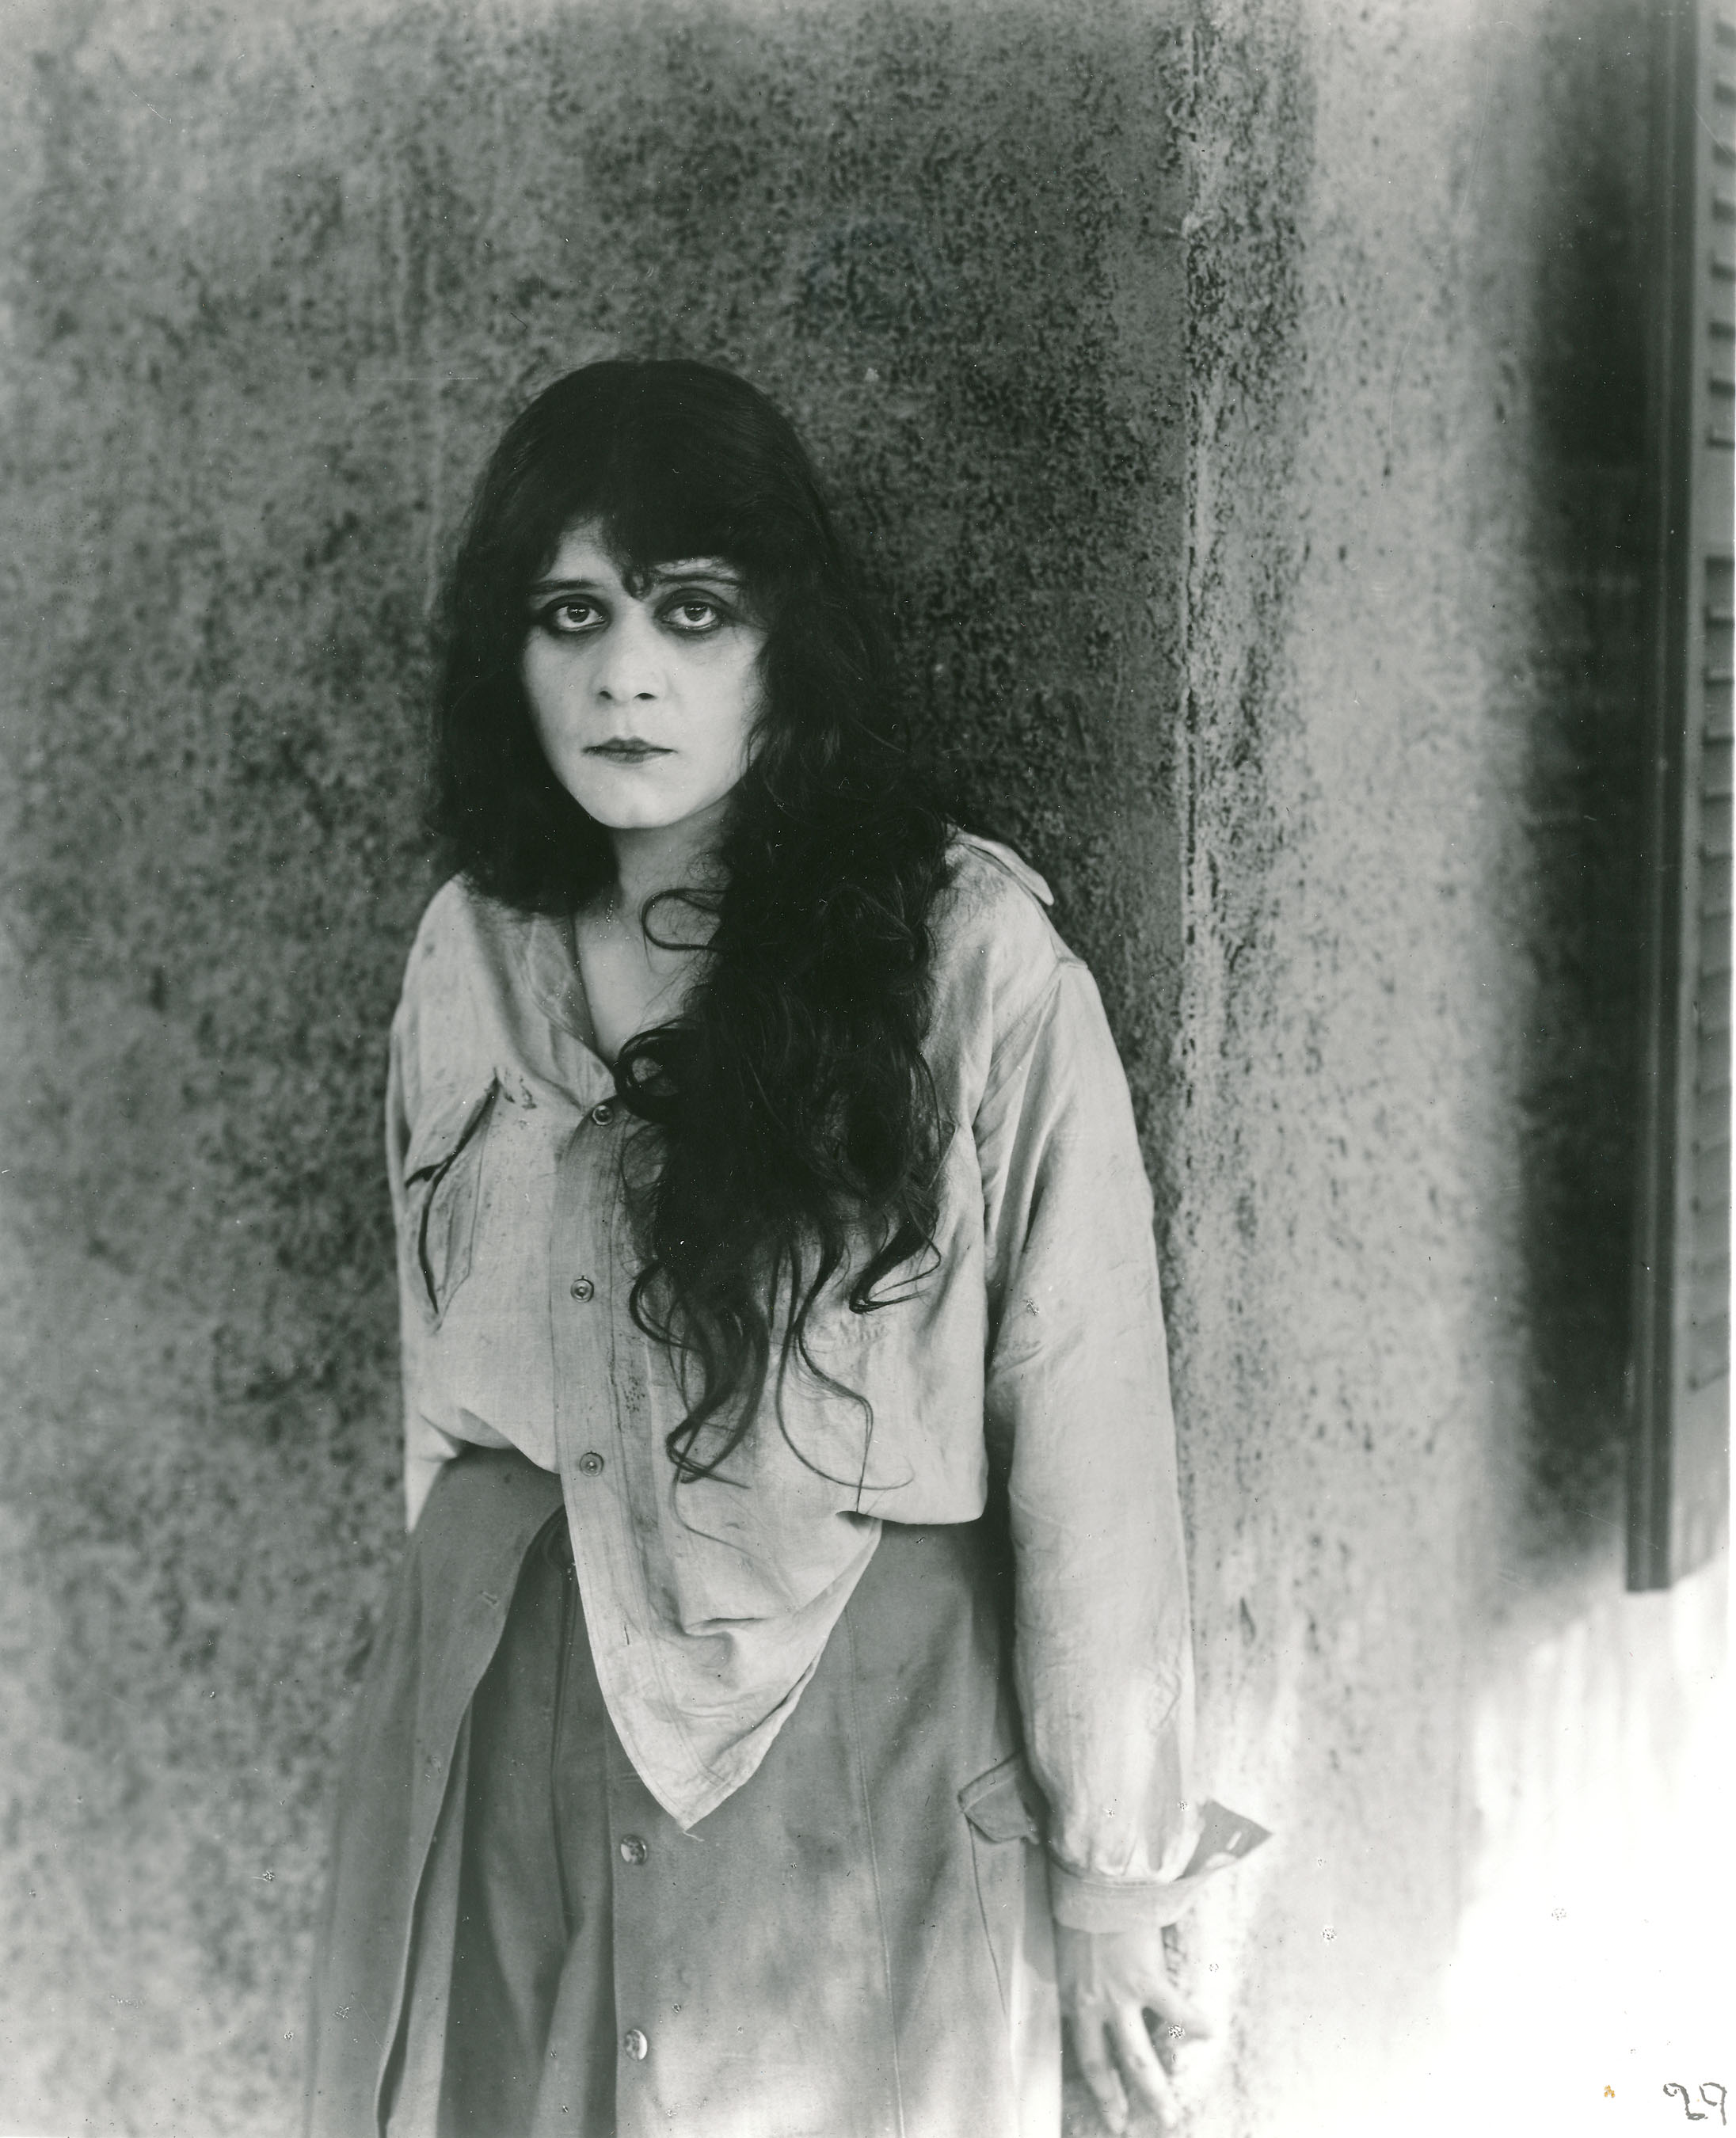 theda bara wikitheda bara marilyn monroe, theda bara cleopatra, theda bara old, theda bara gif, theda bara madame du barry, theda bara, theda bara quotes, theda bara makeup, theda bara wiki, theda bara photos, theda bara youtube, theda bara tumblr, theda bara pronunciation, theda bara maringa, theda bara biography, theda bara house, theda bara salome, theda bara clothes, theda bara biografia, theda bara imdb